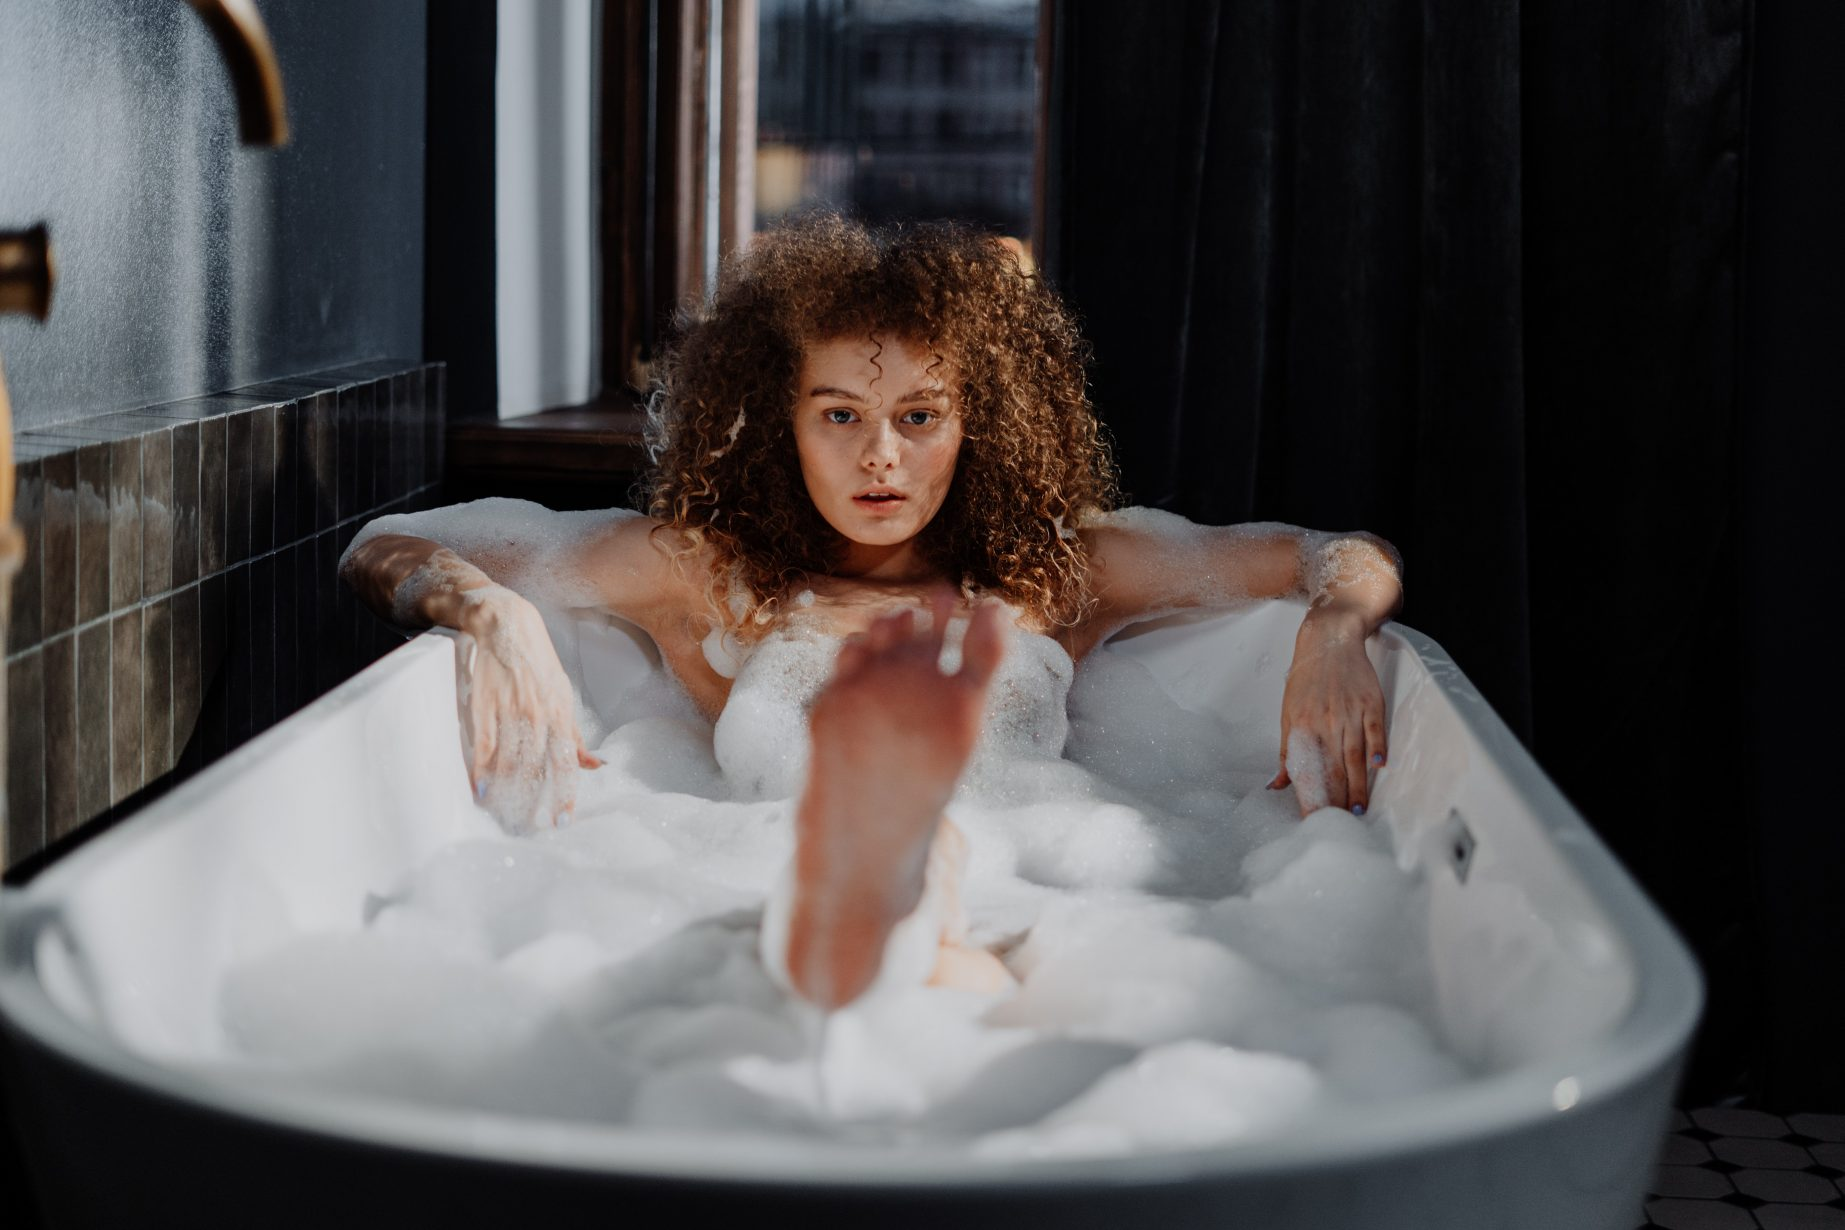 woman-in-bathtub-with-water-4155496